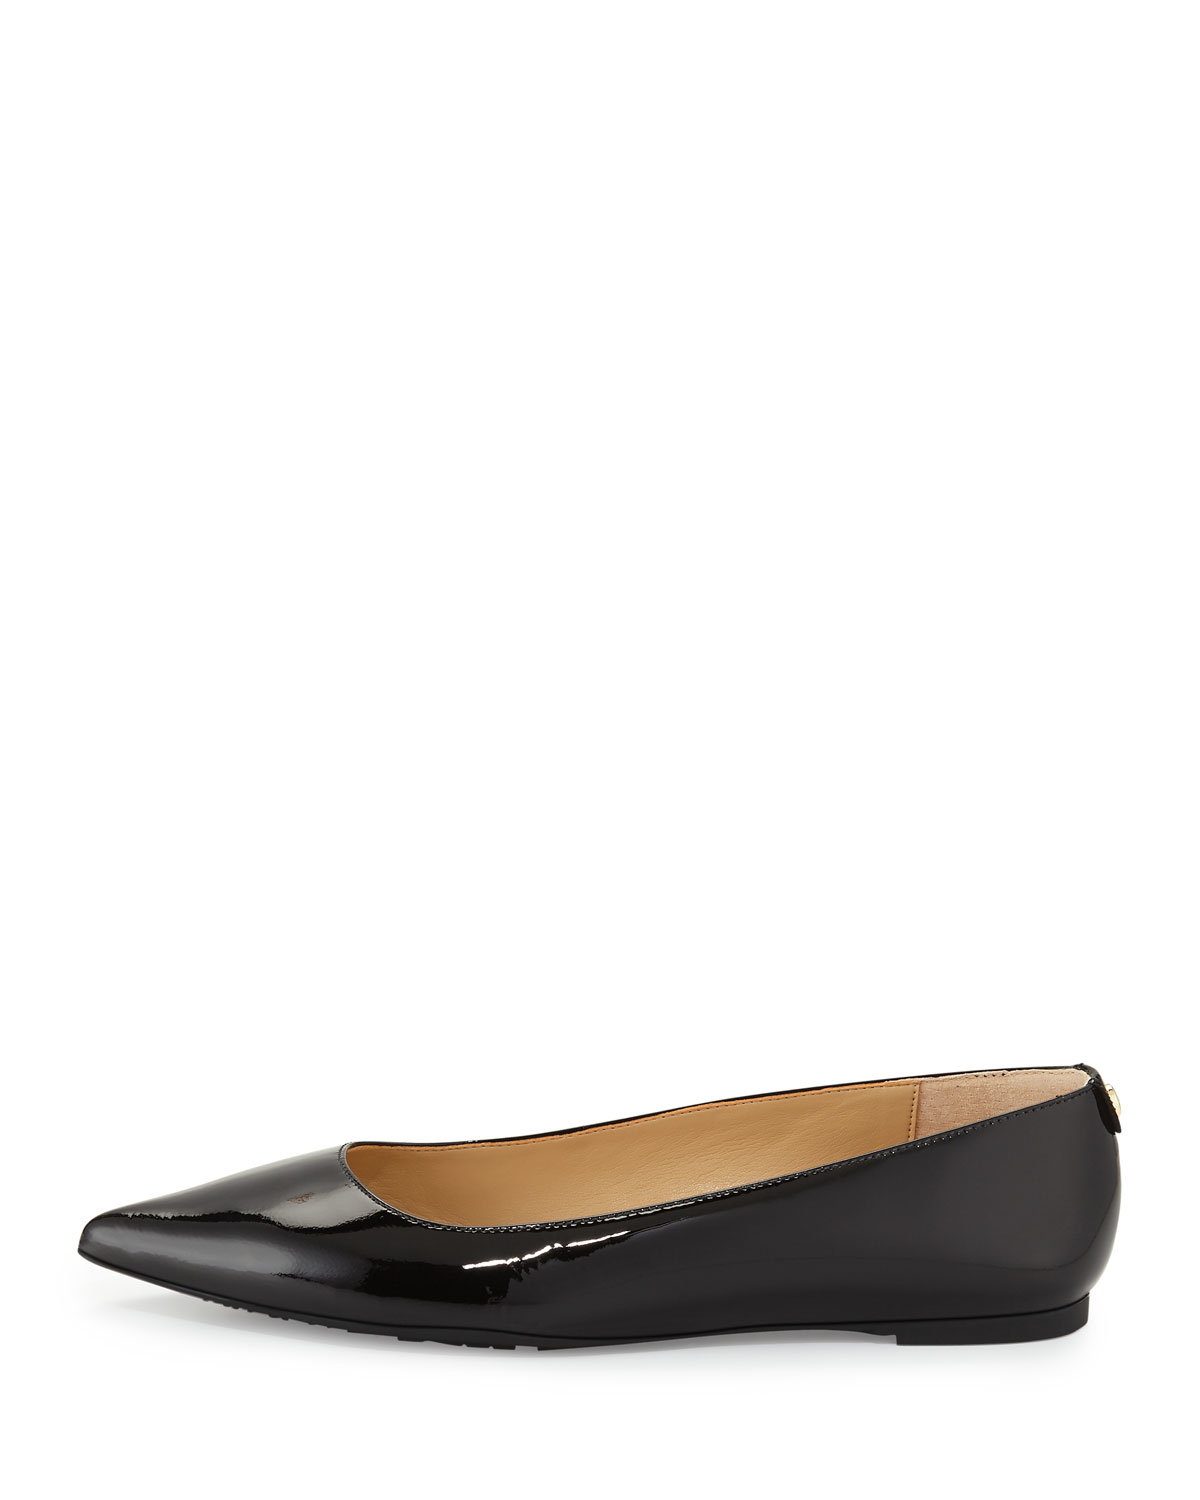 15c4c3609a3 Lyst - MICHAEL Michael Kors Arianna Patent Pointed-toe Flat in Black